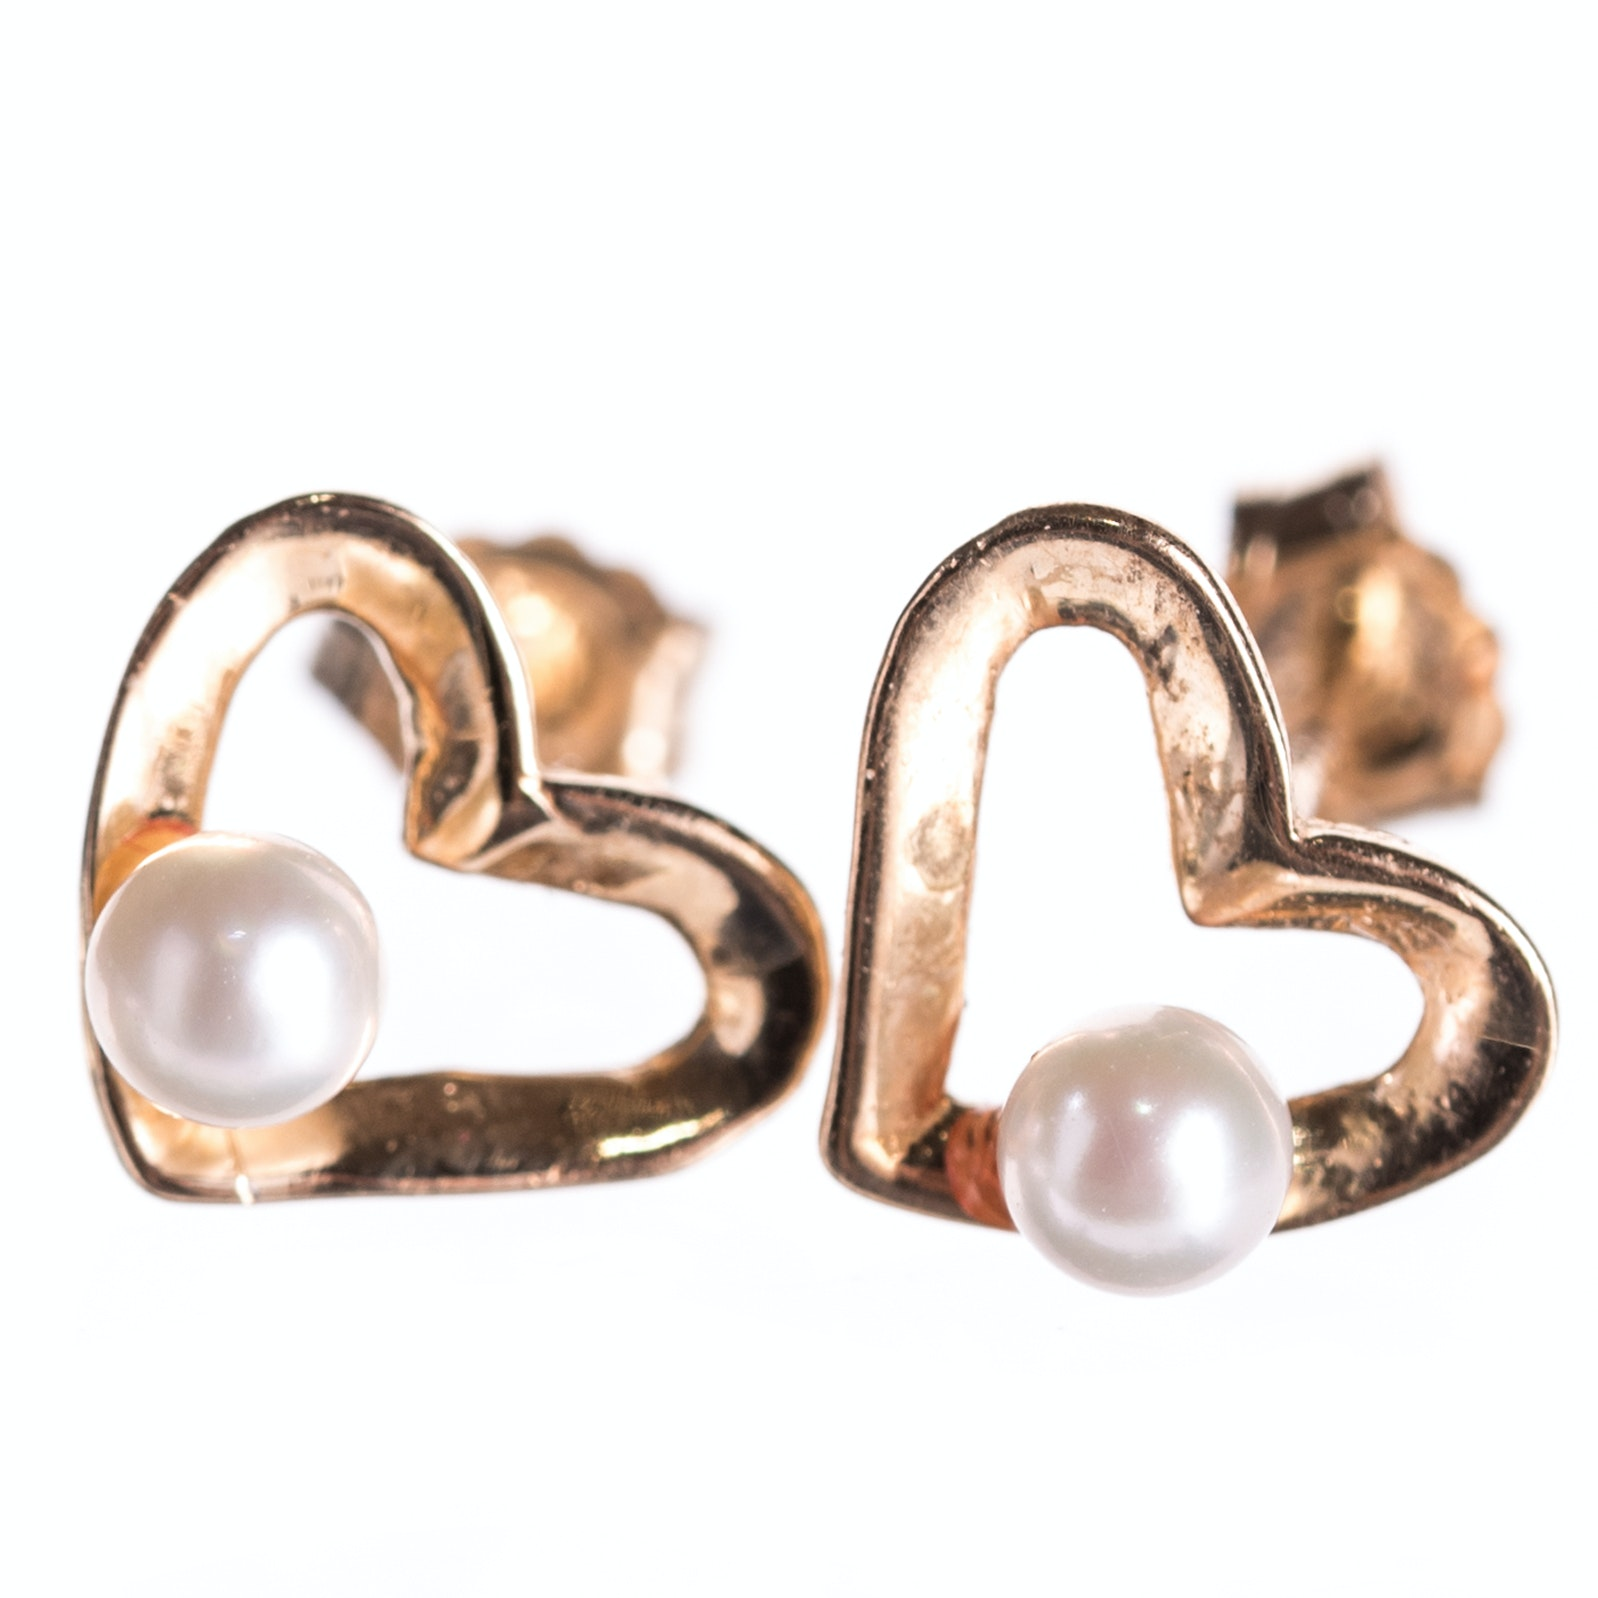 14K Yellow Gold Heart Earrings with Pearl